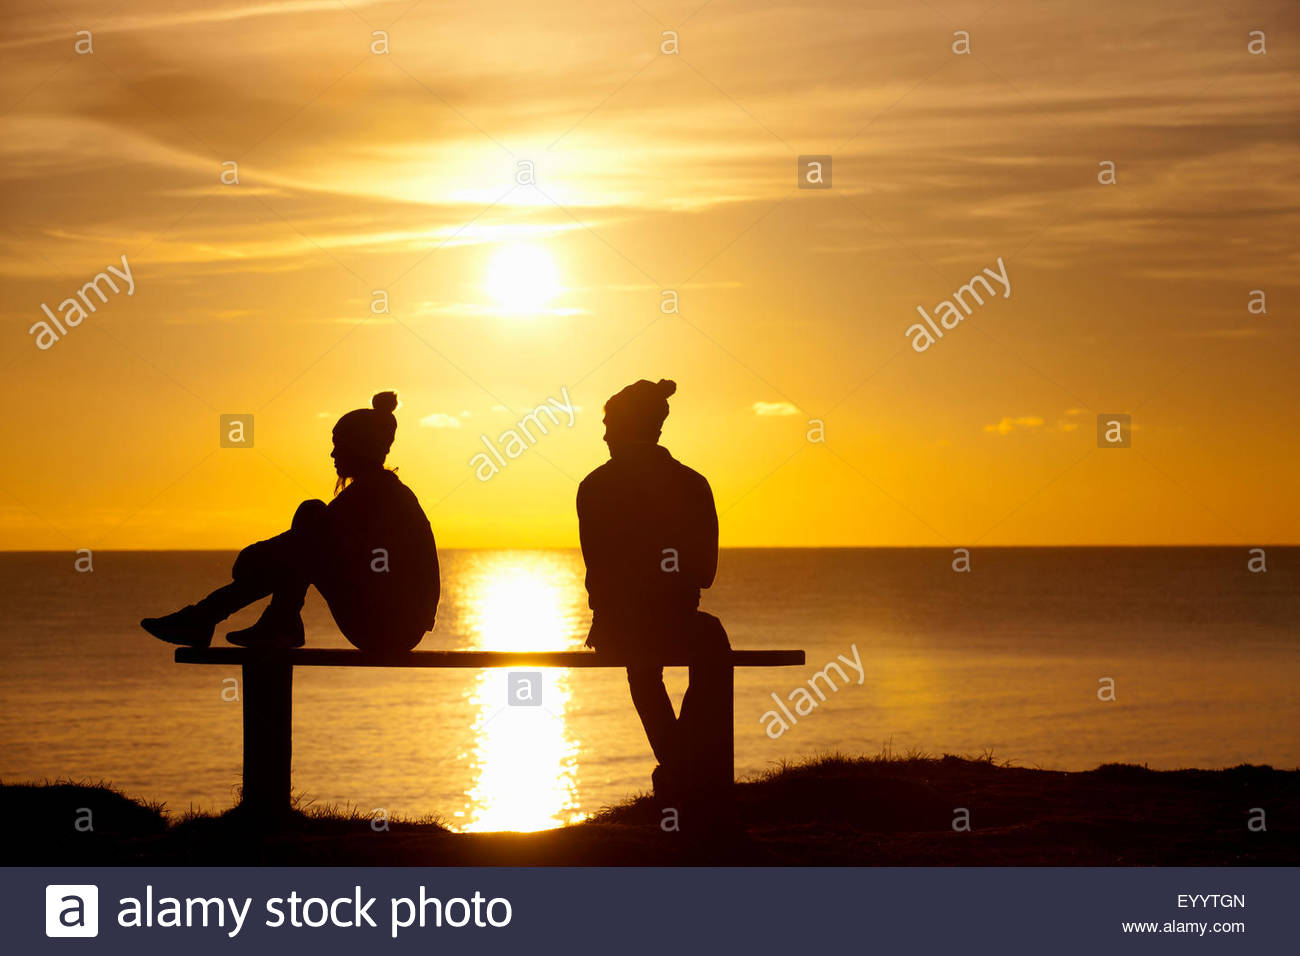 Silhouette of couple, sitting separately on bench, against sunset over the ocean - Stock Image